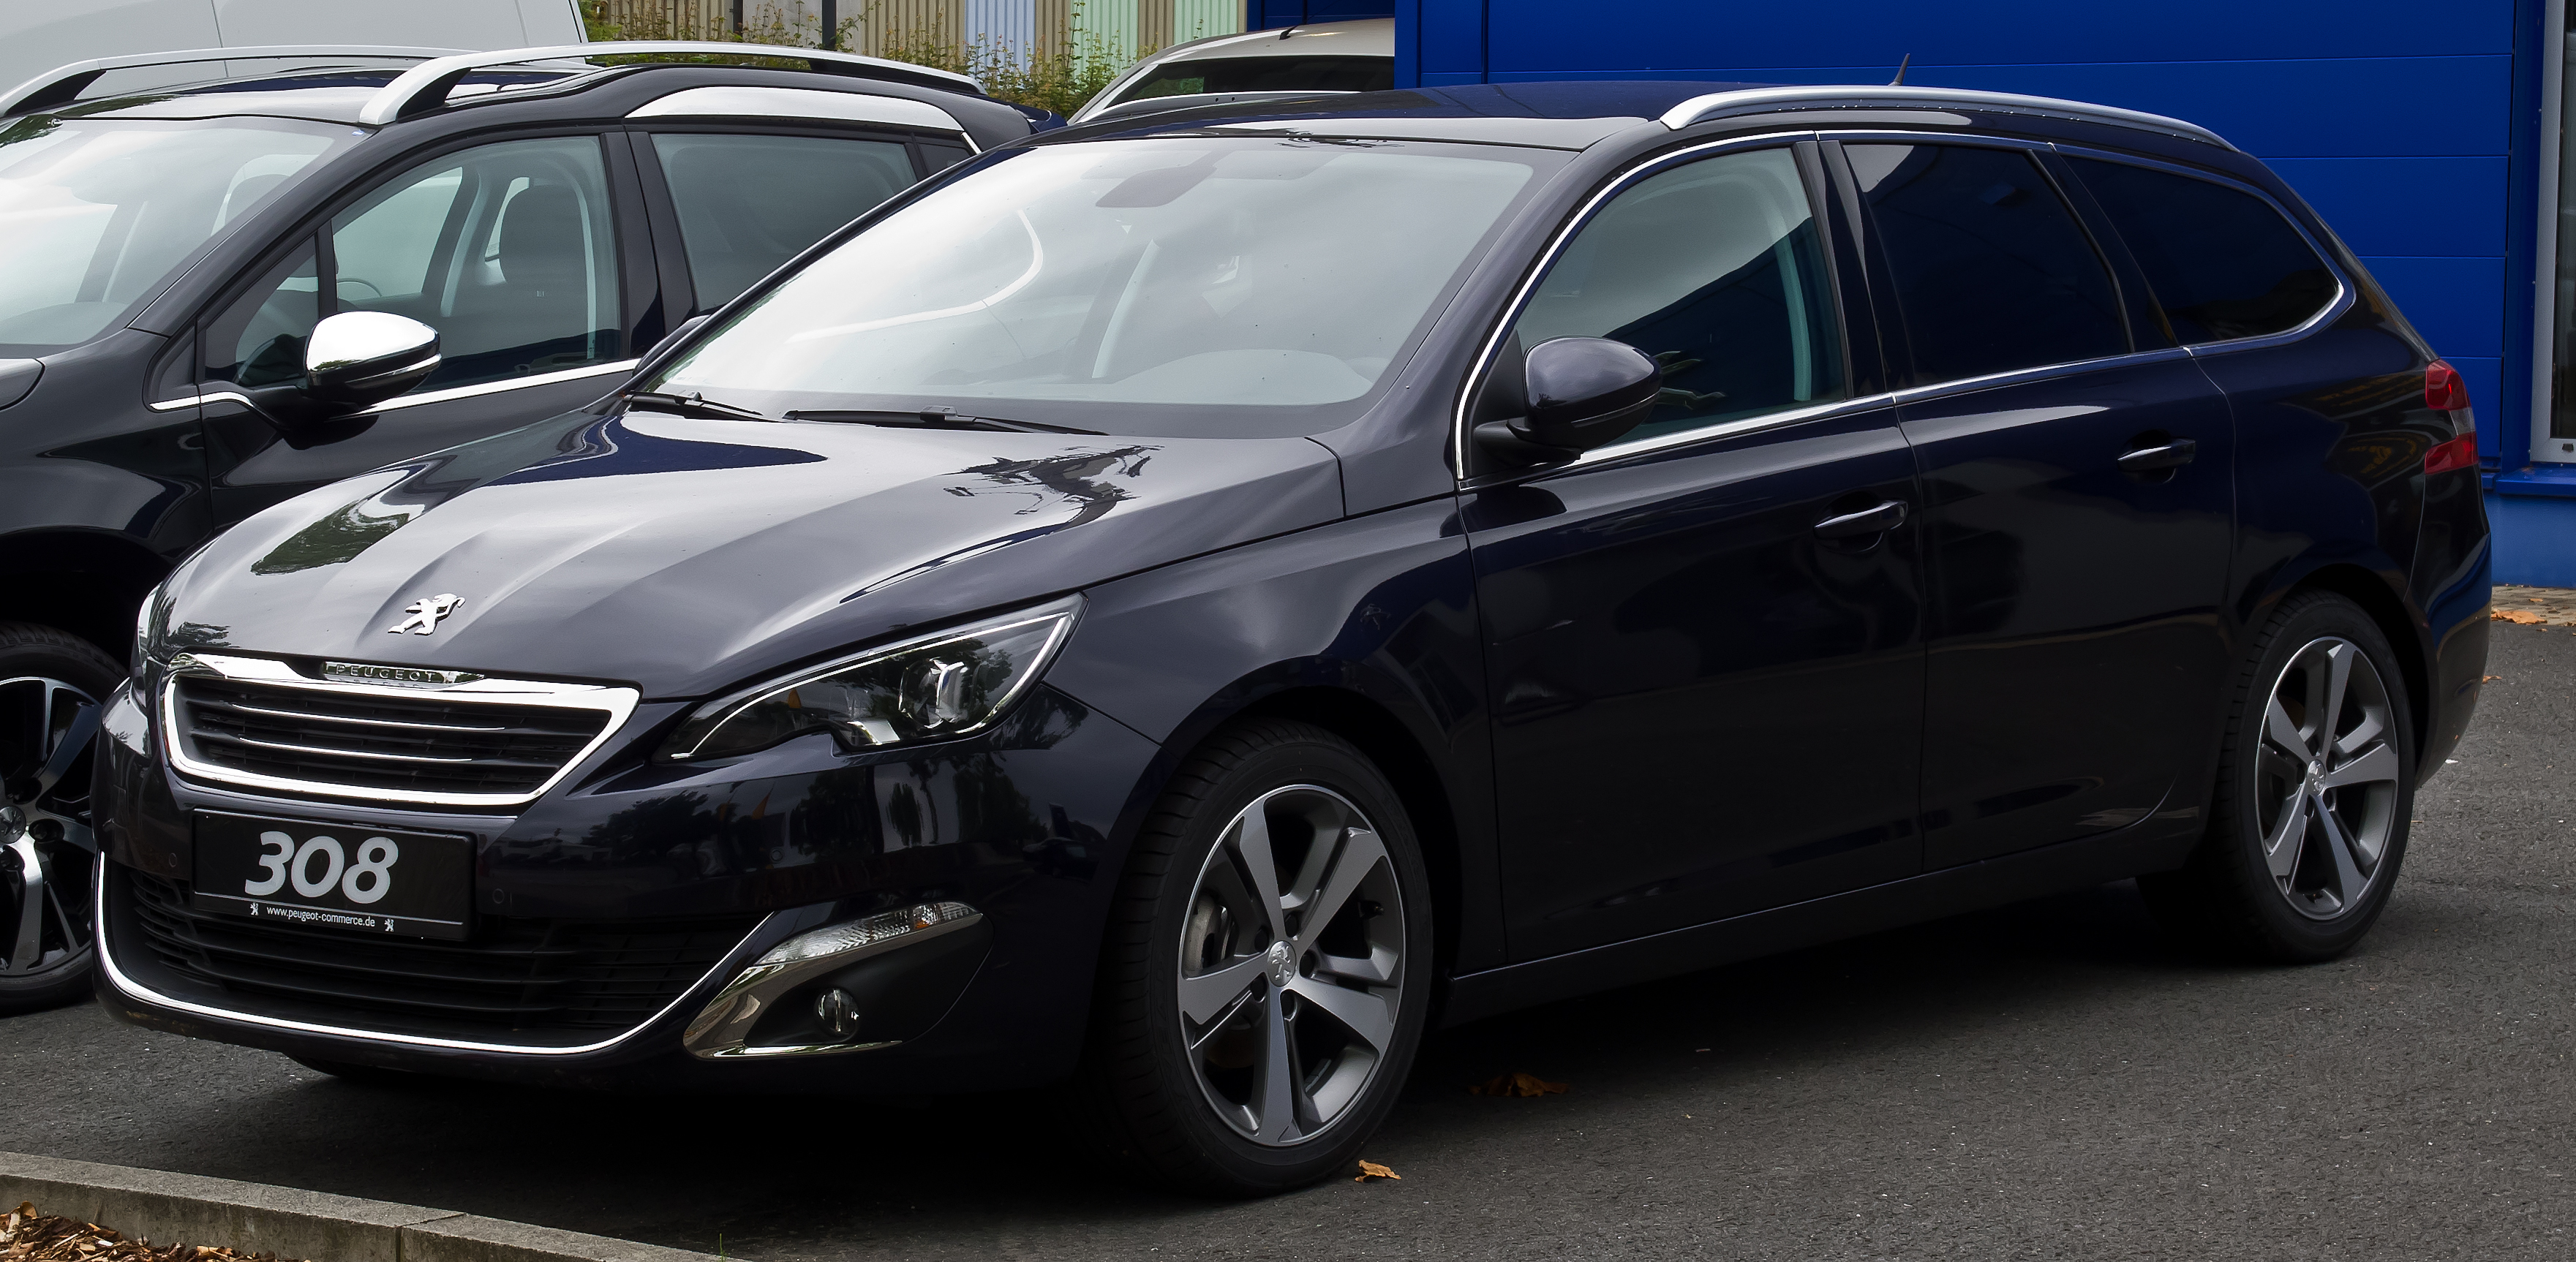 Description Peugeot 308 SW 130 e-THP STOP & START Allure (II ...